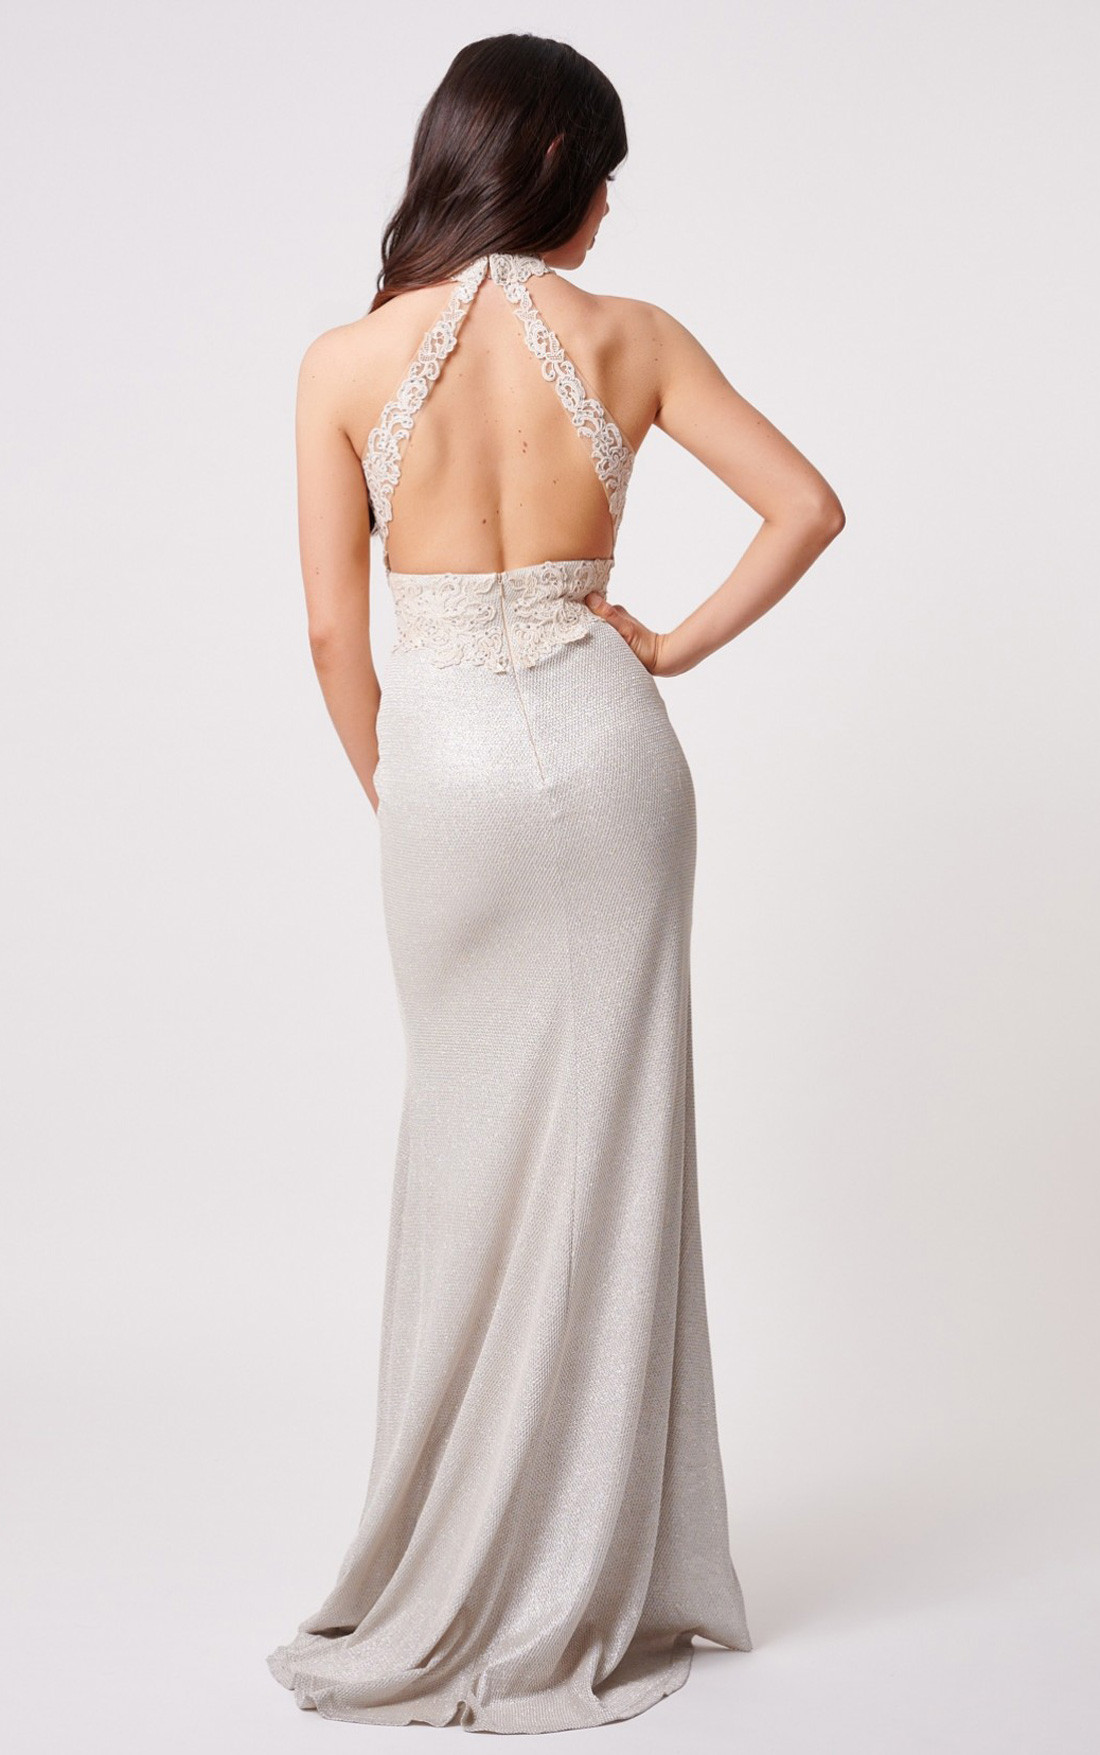 Forever Unique - Lydia Champagne Glitter Dress with Open Back (MN206001)